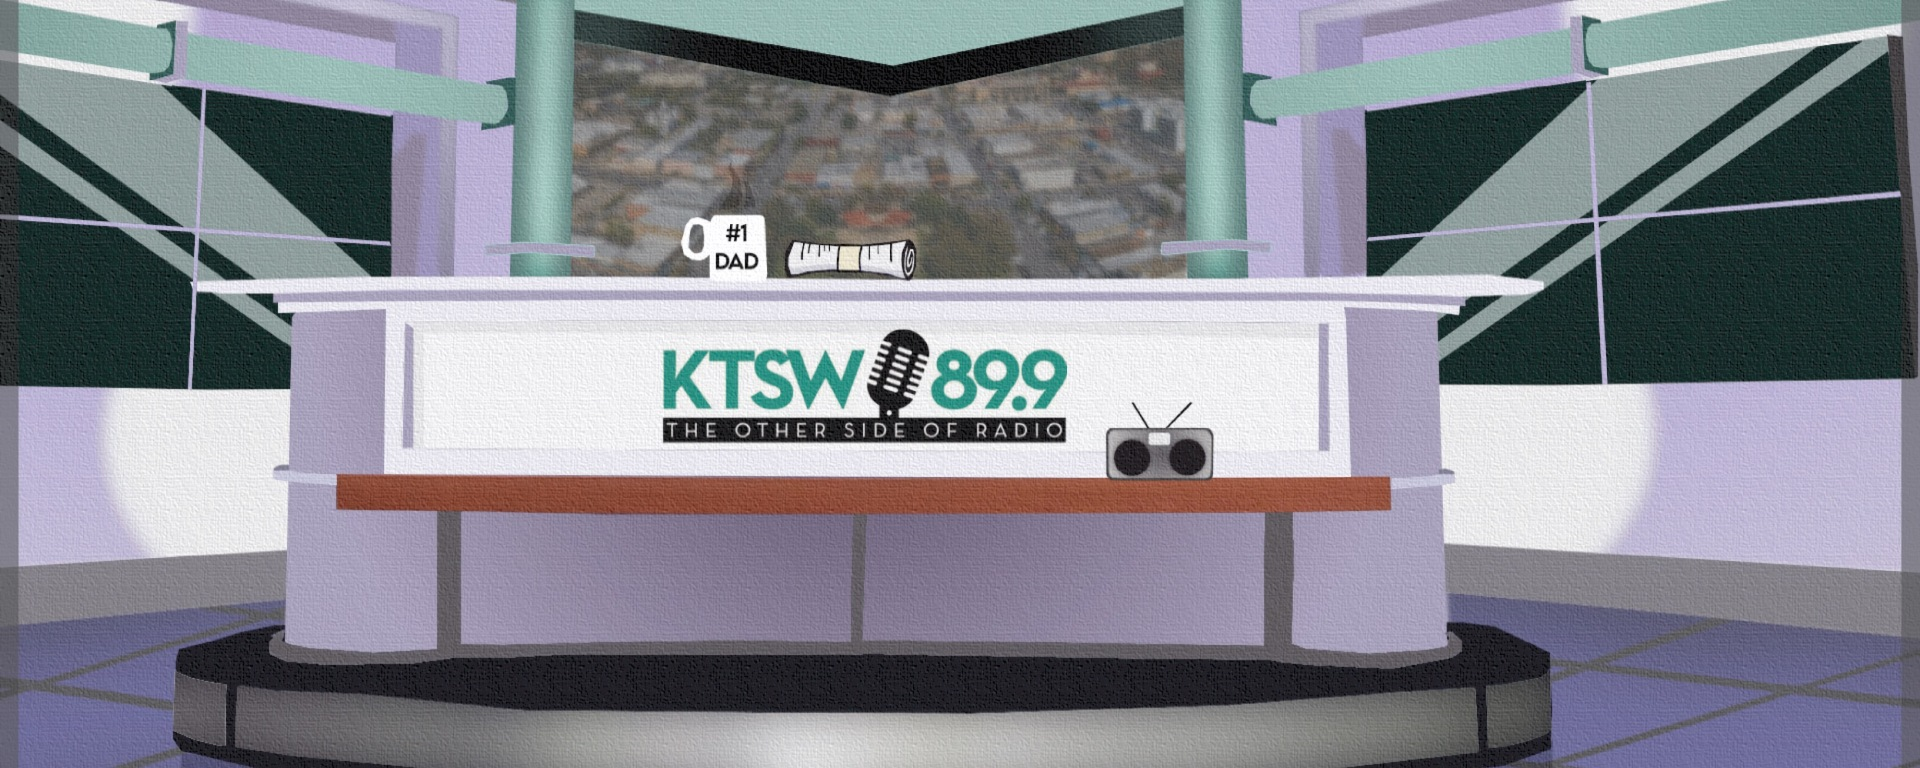 news room graphic with ktsw 89.9 logo. Coffee cup on news desk and news paper roll.